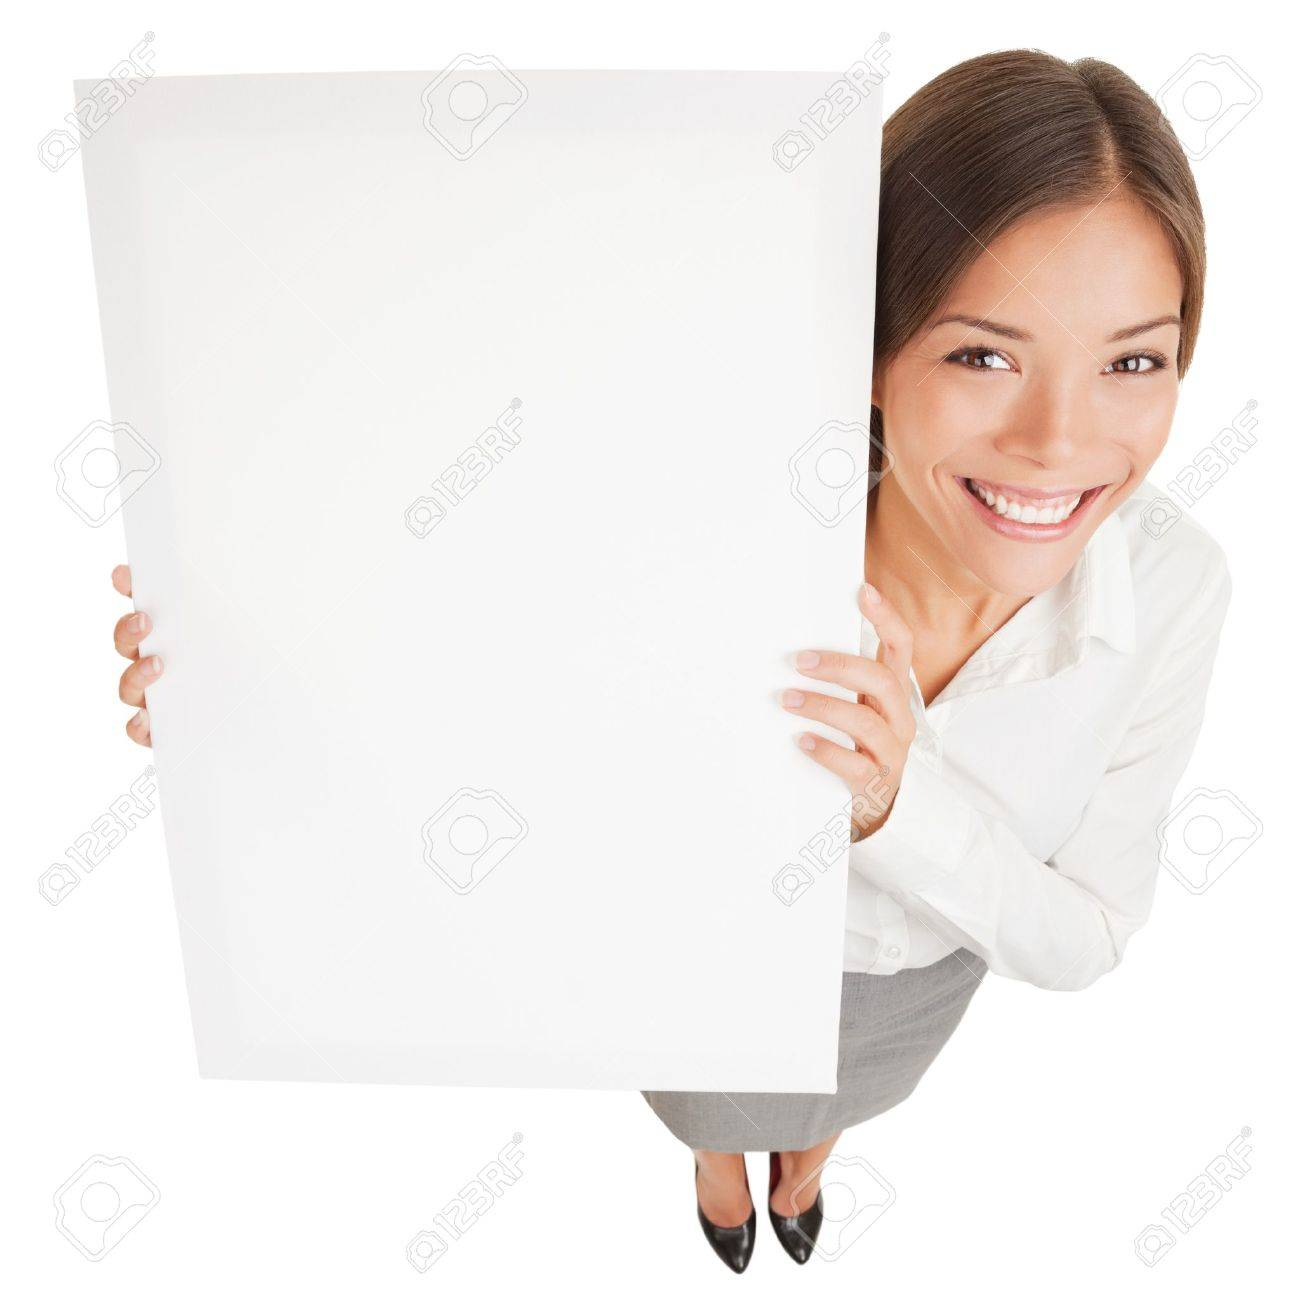 Woman showing a white board sign poster  High angle shot of attractive smiling woman with a blank white board isolated on white background  Mixed race Asian Caucasian business woman smiling happy Stock Photo - 17600789